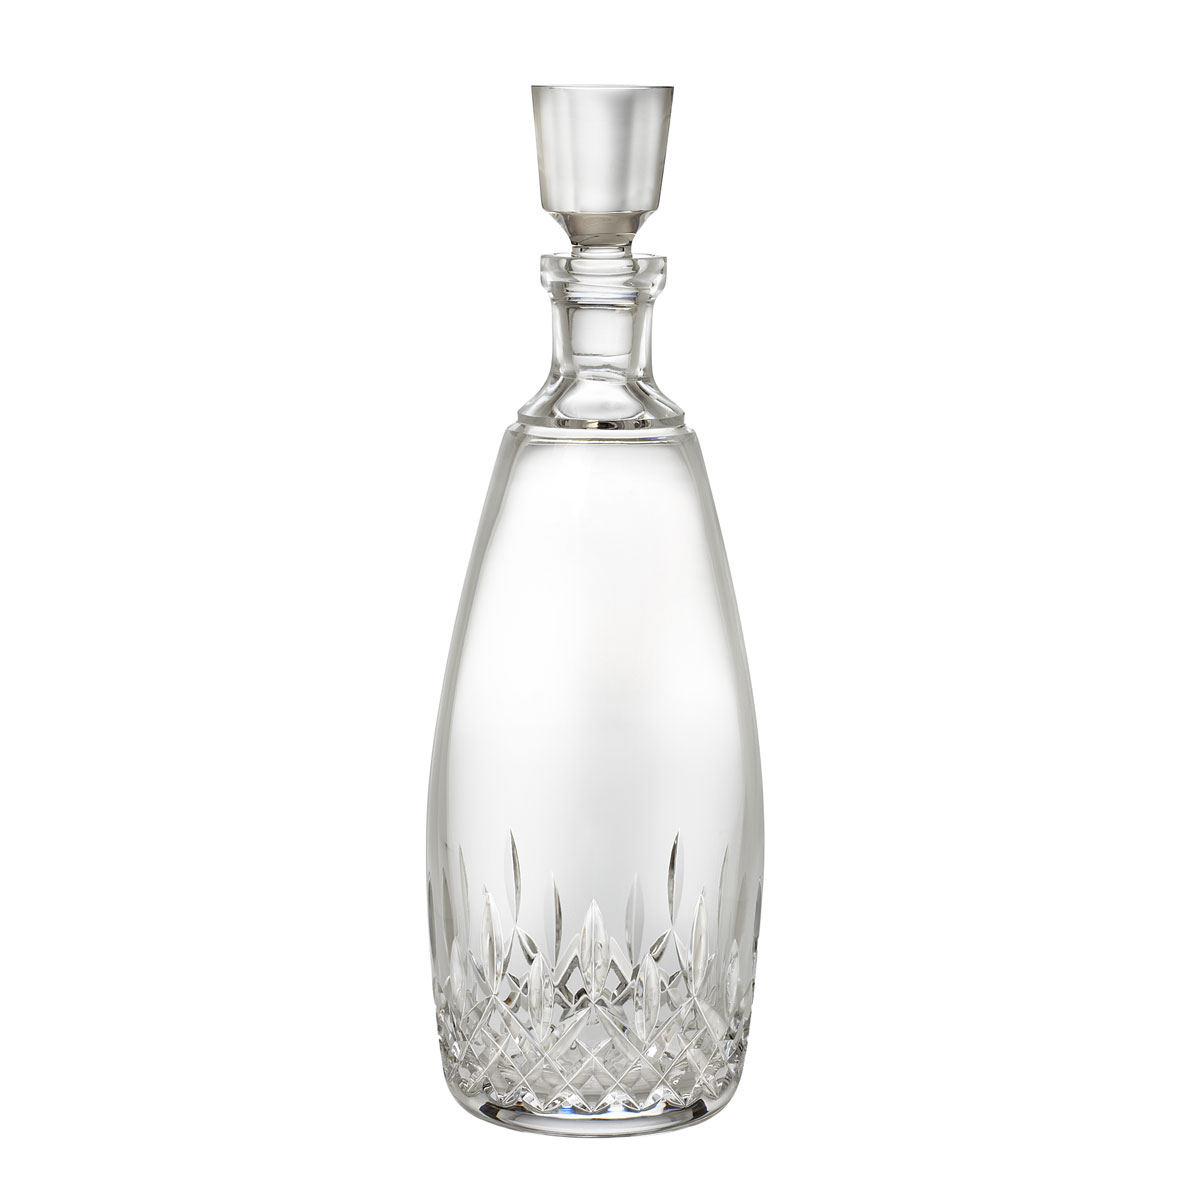 Waterford Crystal, Lismore Essence Crystal Decanter